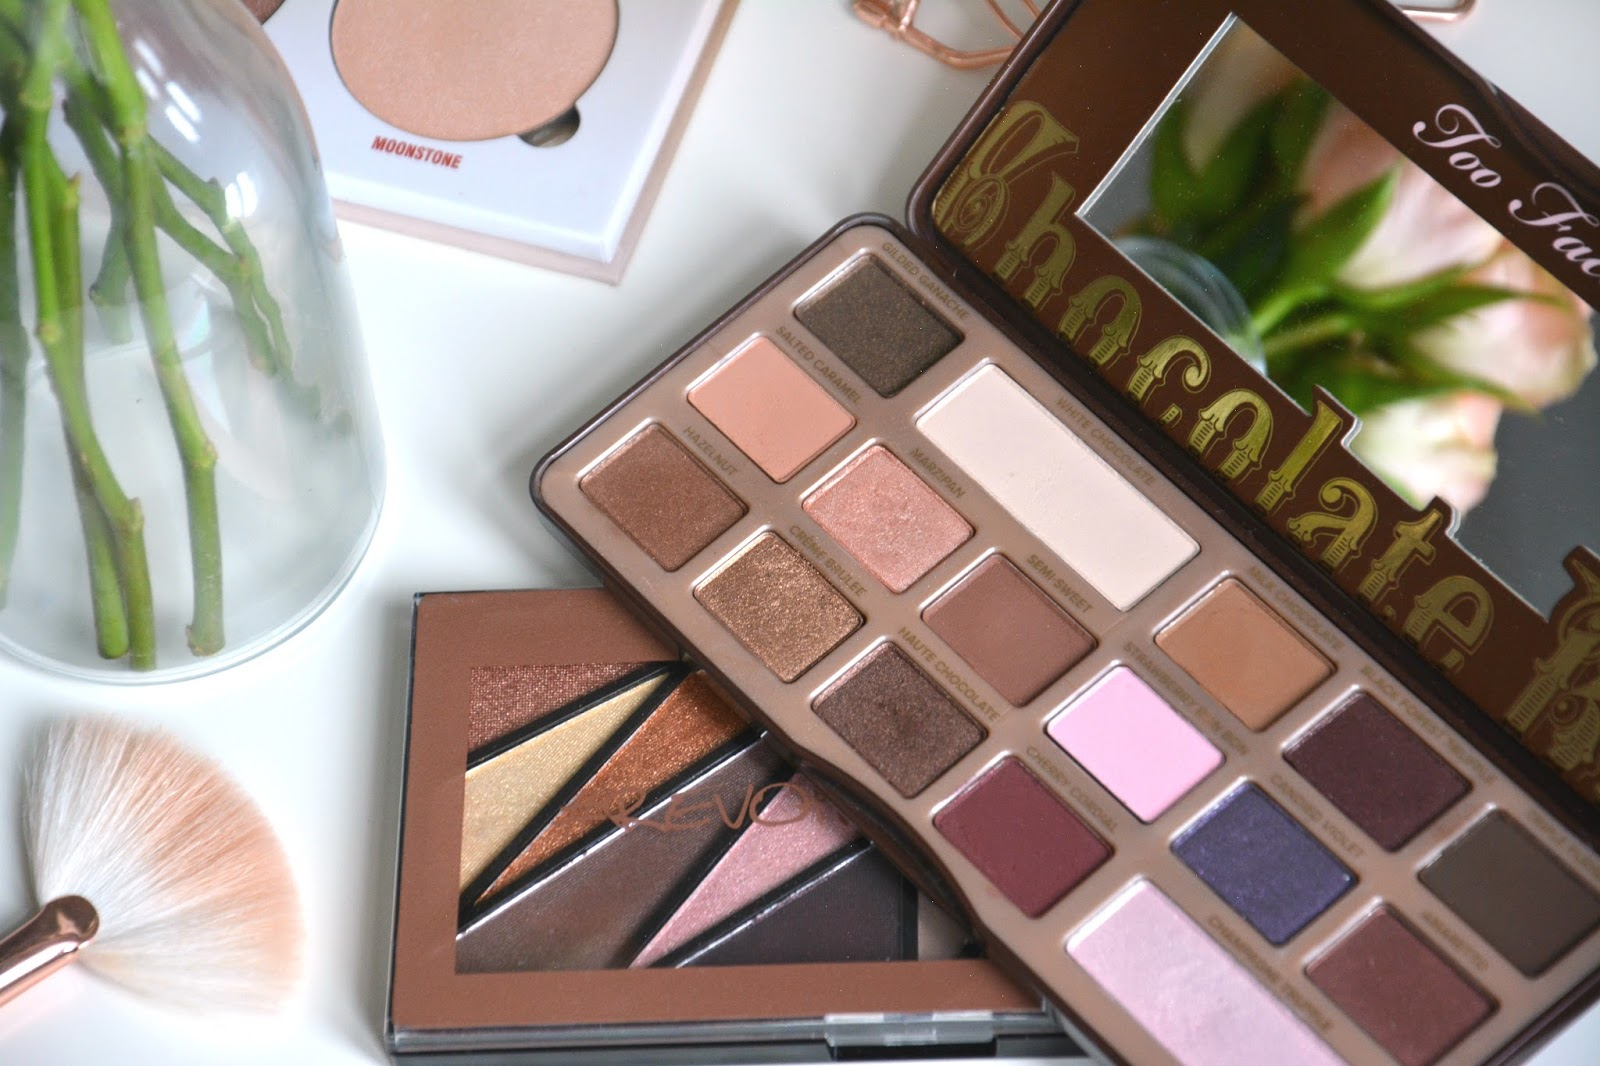 Too Faced Chocolate Bar Eyeshadow Palette; Makeup Revolution #RevholicEyes Palette; Anastasia Beverly Hills Glow Kit Sun Dipped; Zoeva Rosegold Fan Brush; Pastel Roses